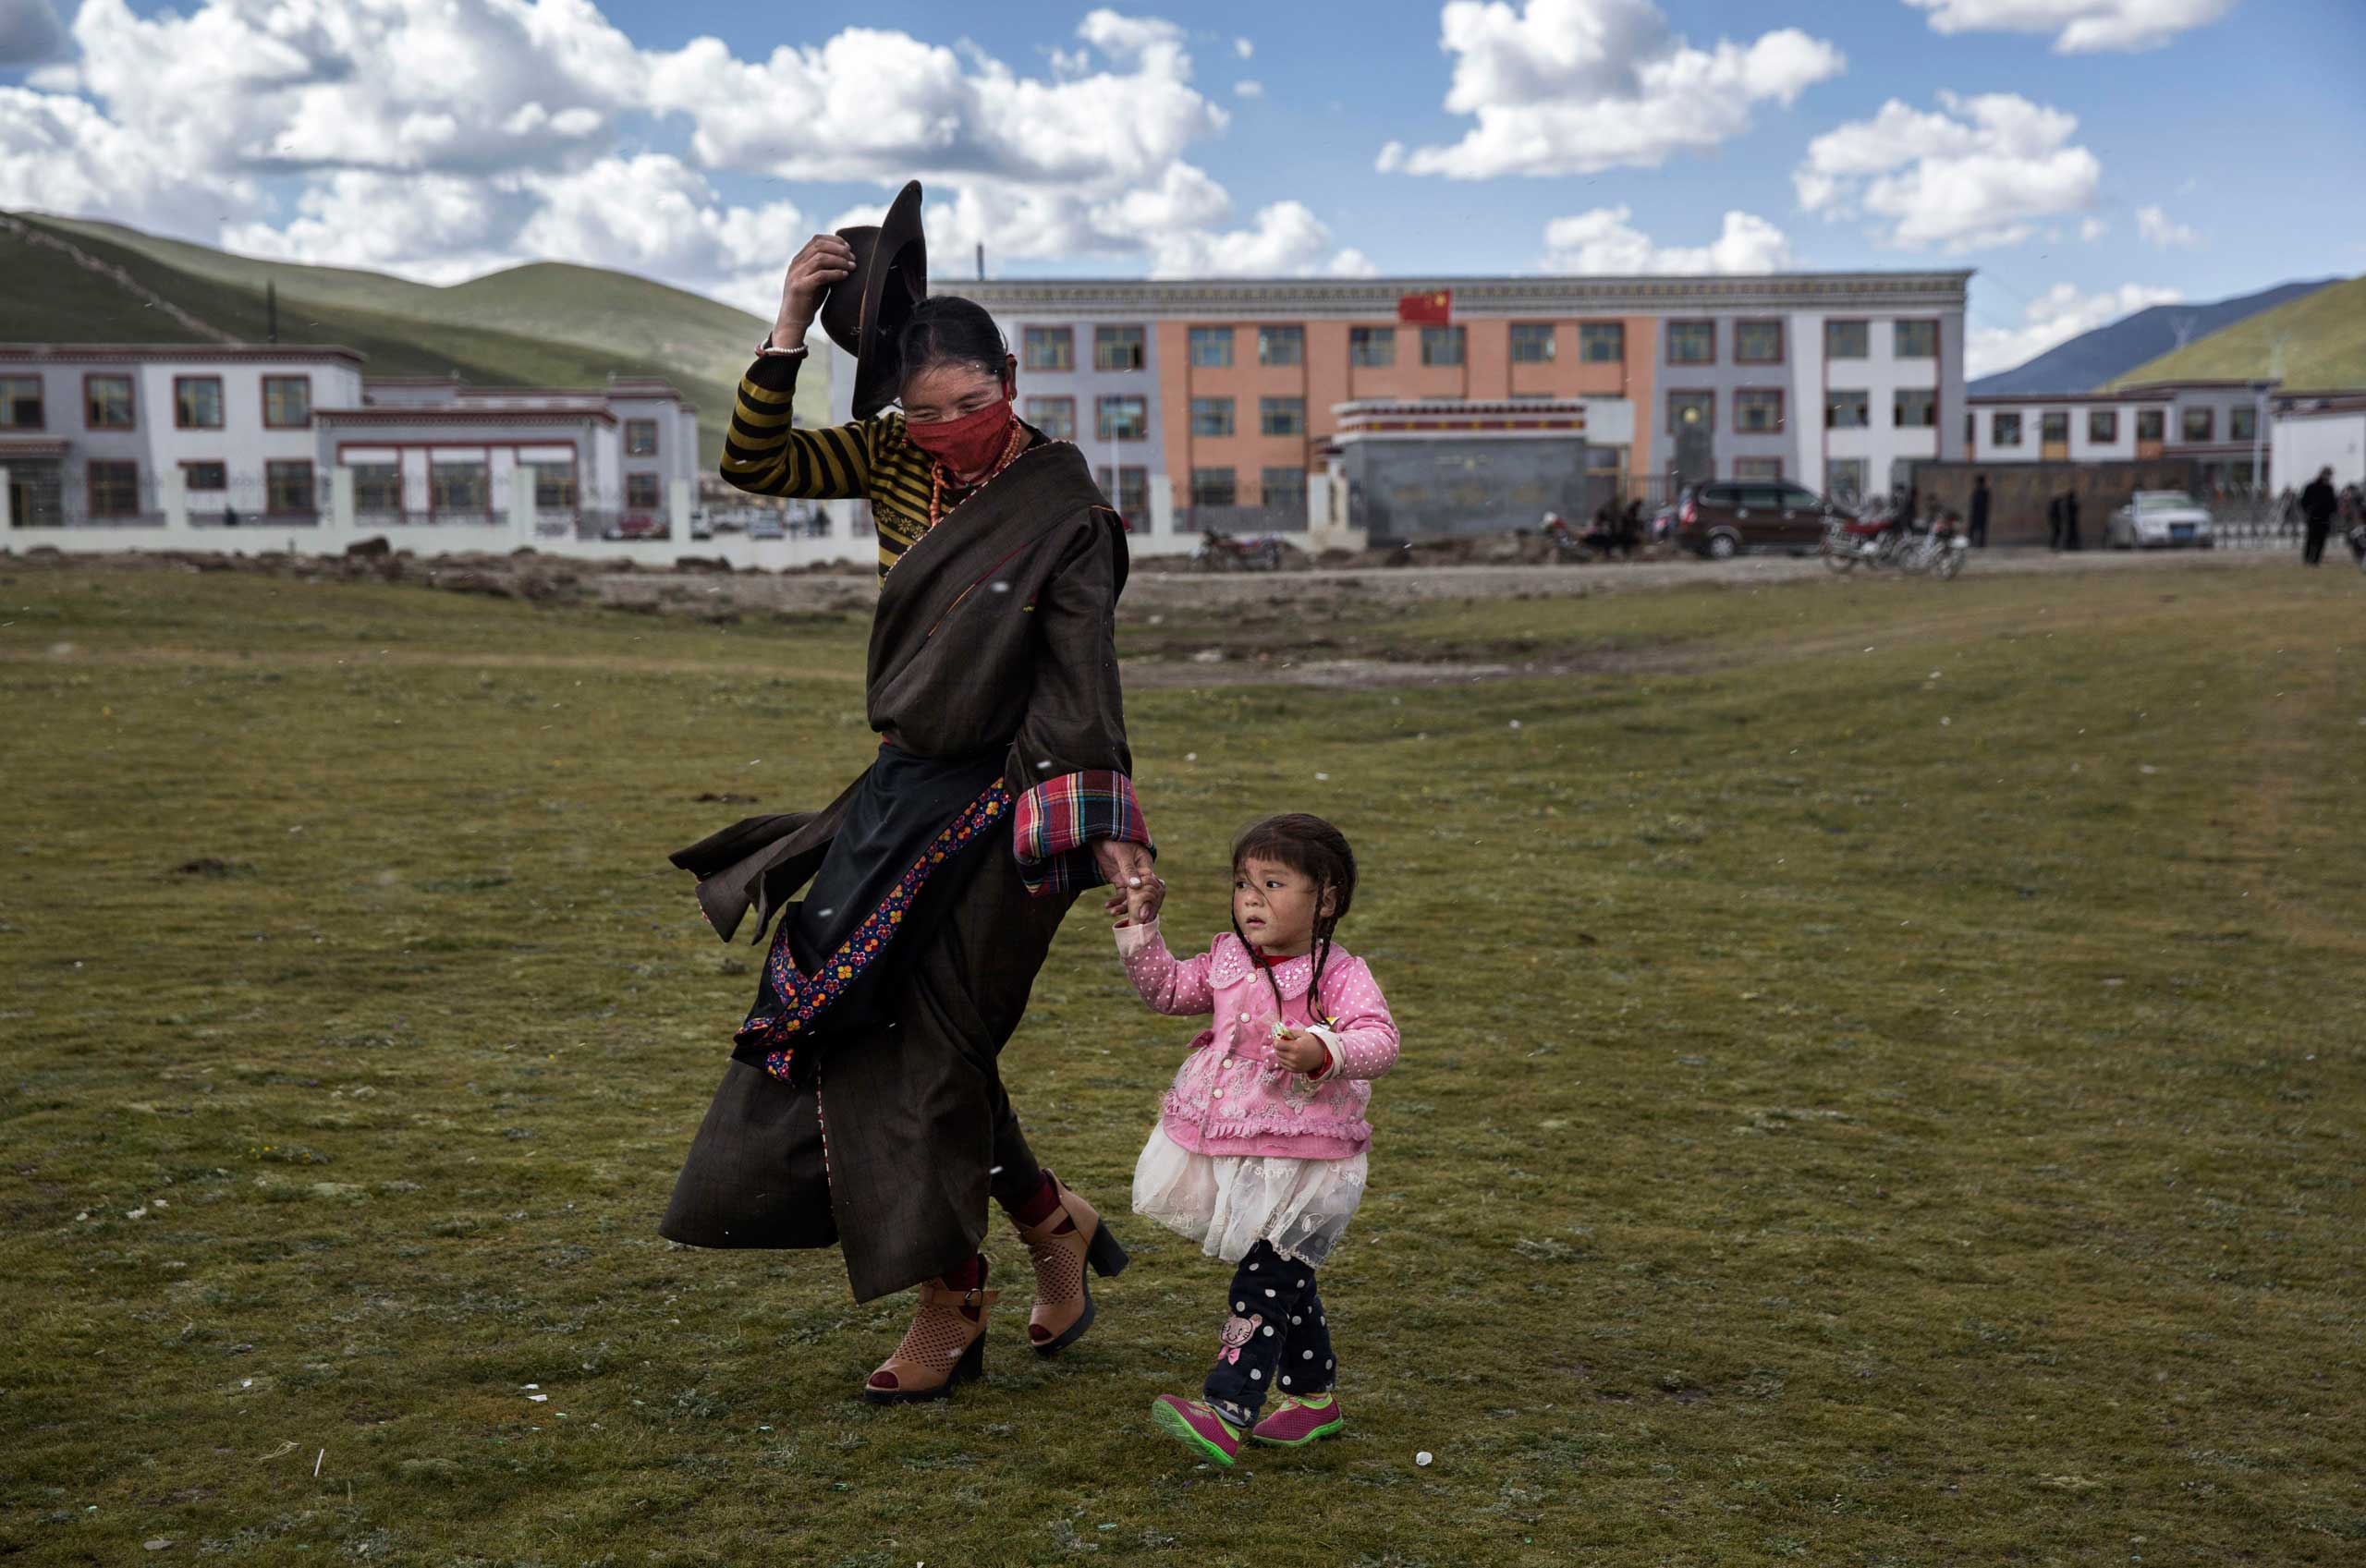 A Tibetan woman holds on to her hat in strong winds as she walks her daughter home from a Chinese government school in a resettlement community on the Tibetan Plateau in Yushu County, on July 23, 2015.